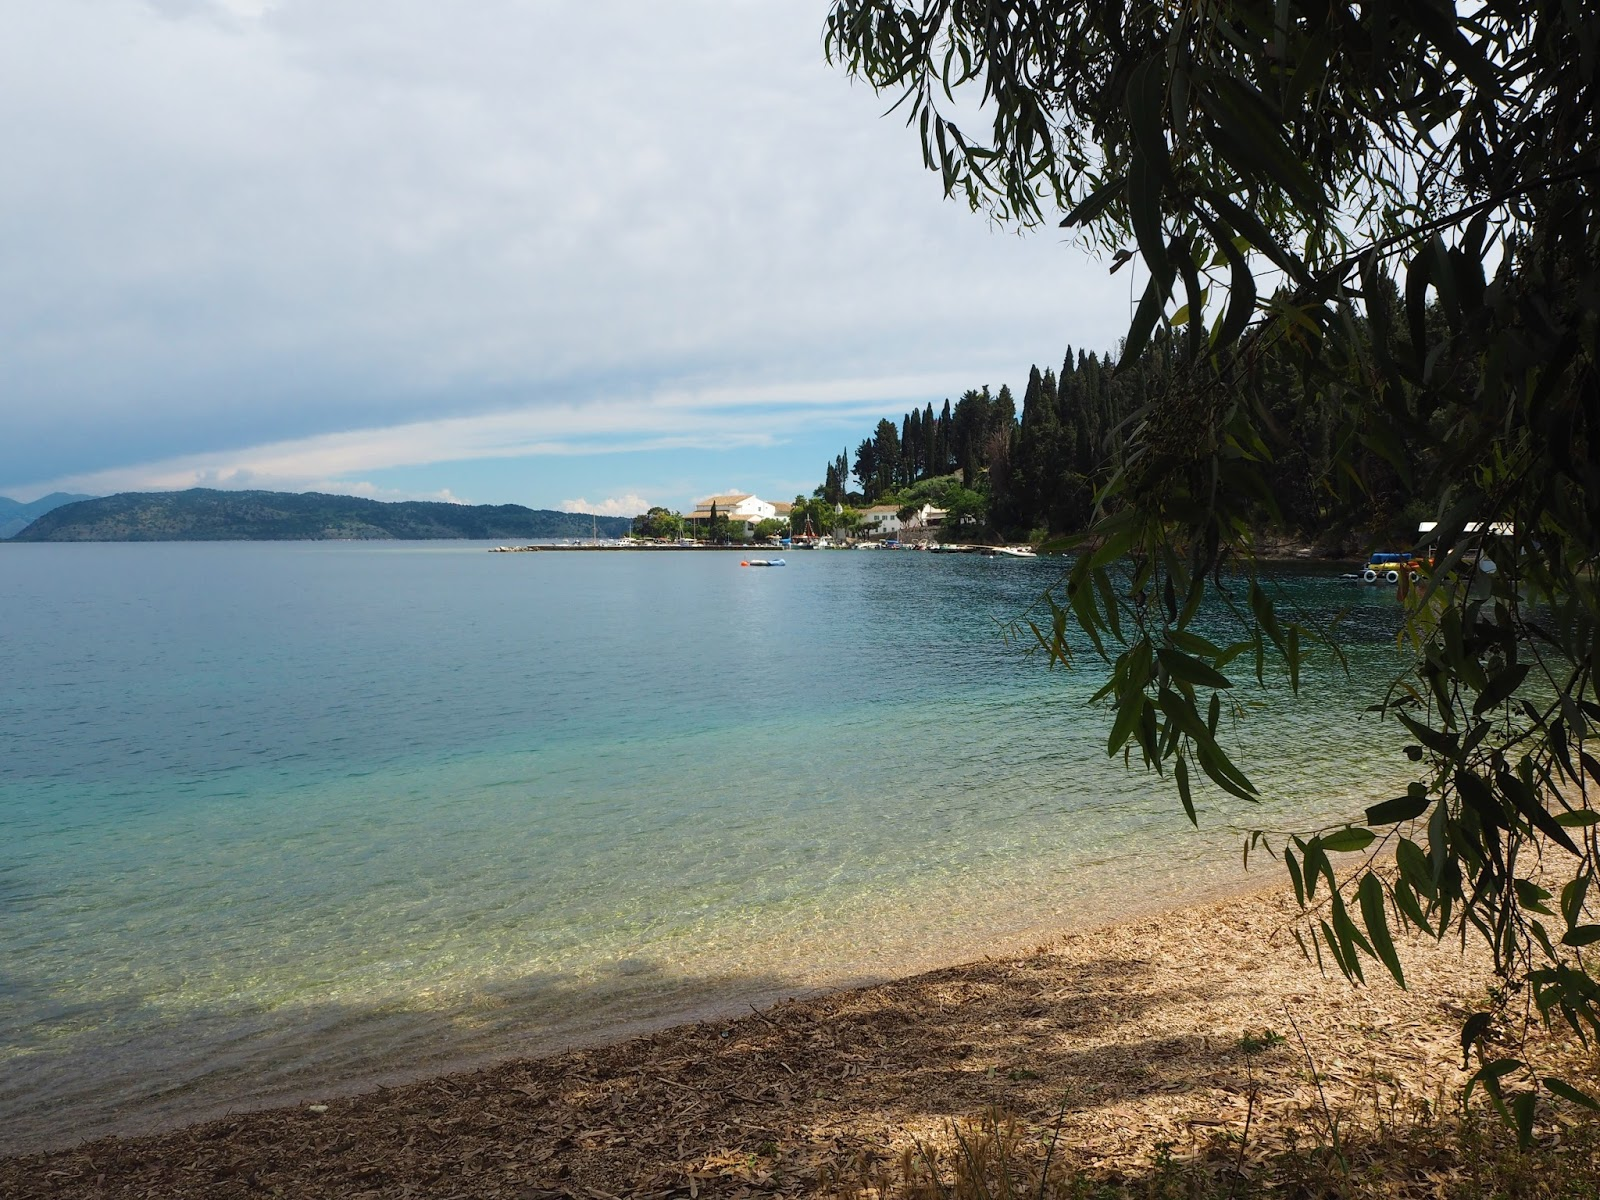 A diary-like description of a holiday in Corfu, Greece